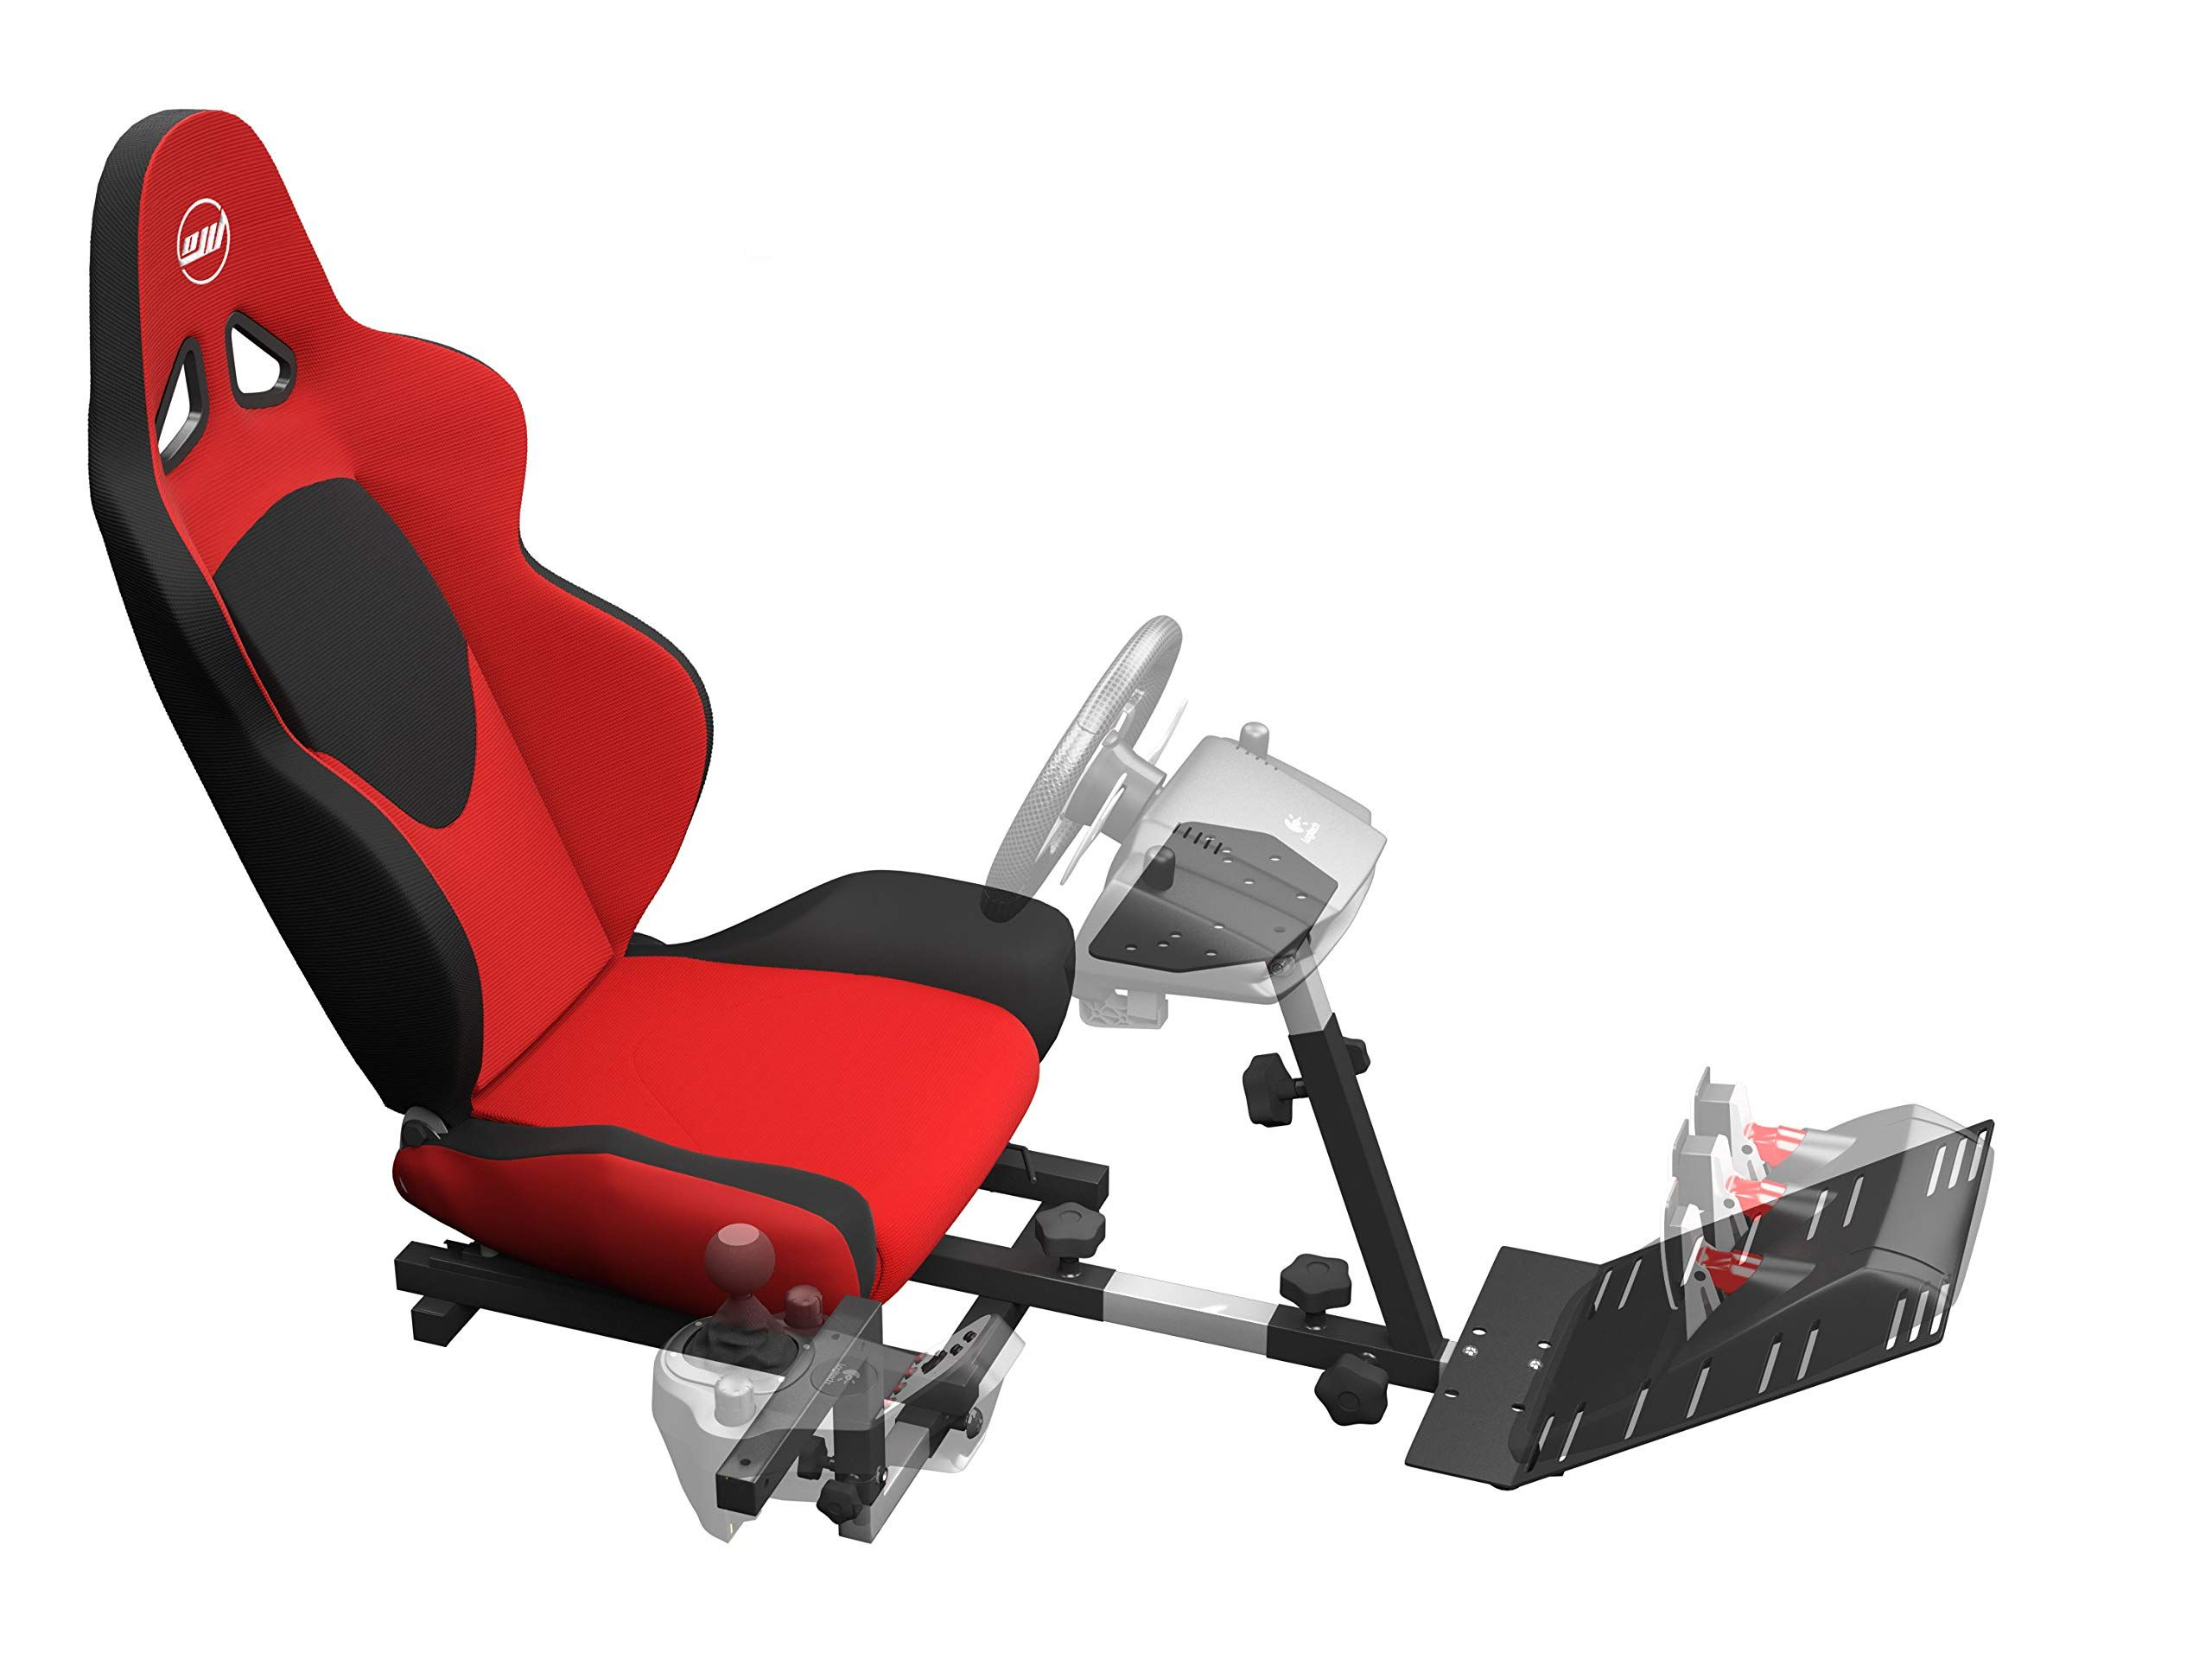 f4695880202 OpenWheeler GEN2 Racing Wheel Stand Cockpit Red on Black Fits All Logitech  G29 G920 All Thrustmaster All Fanatec Wheels,#Stand, #Cockpit, #Red, #Wheel